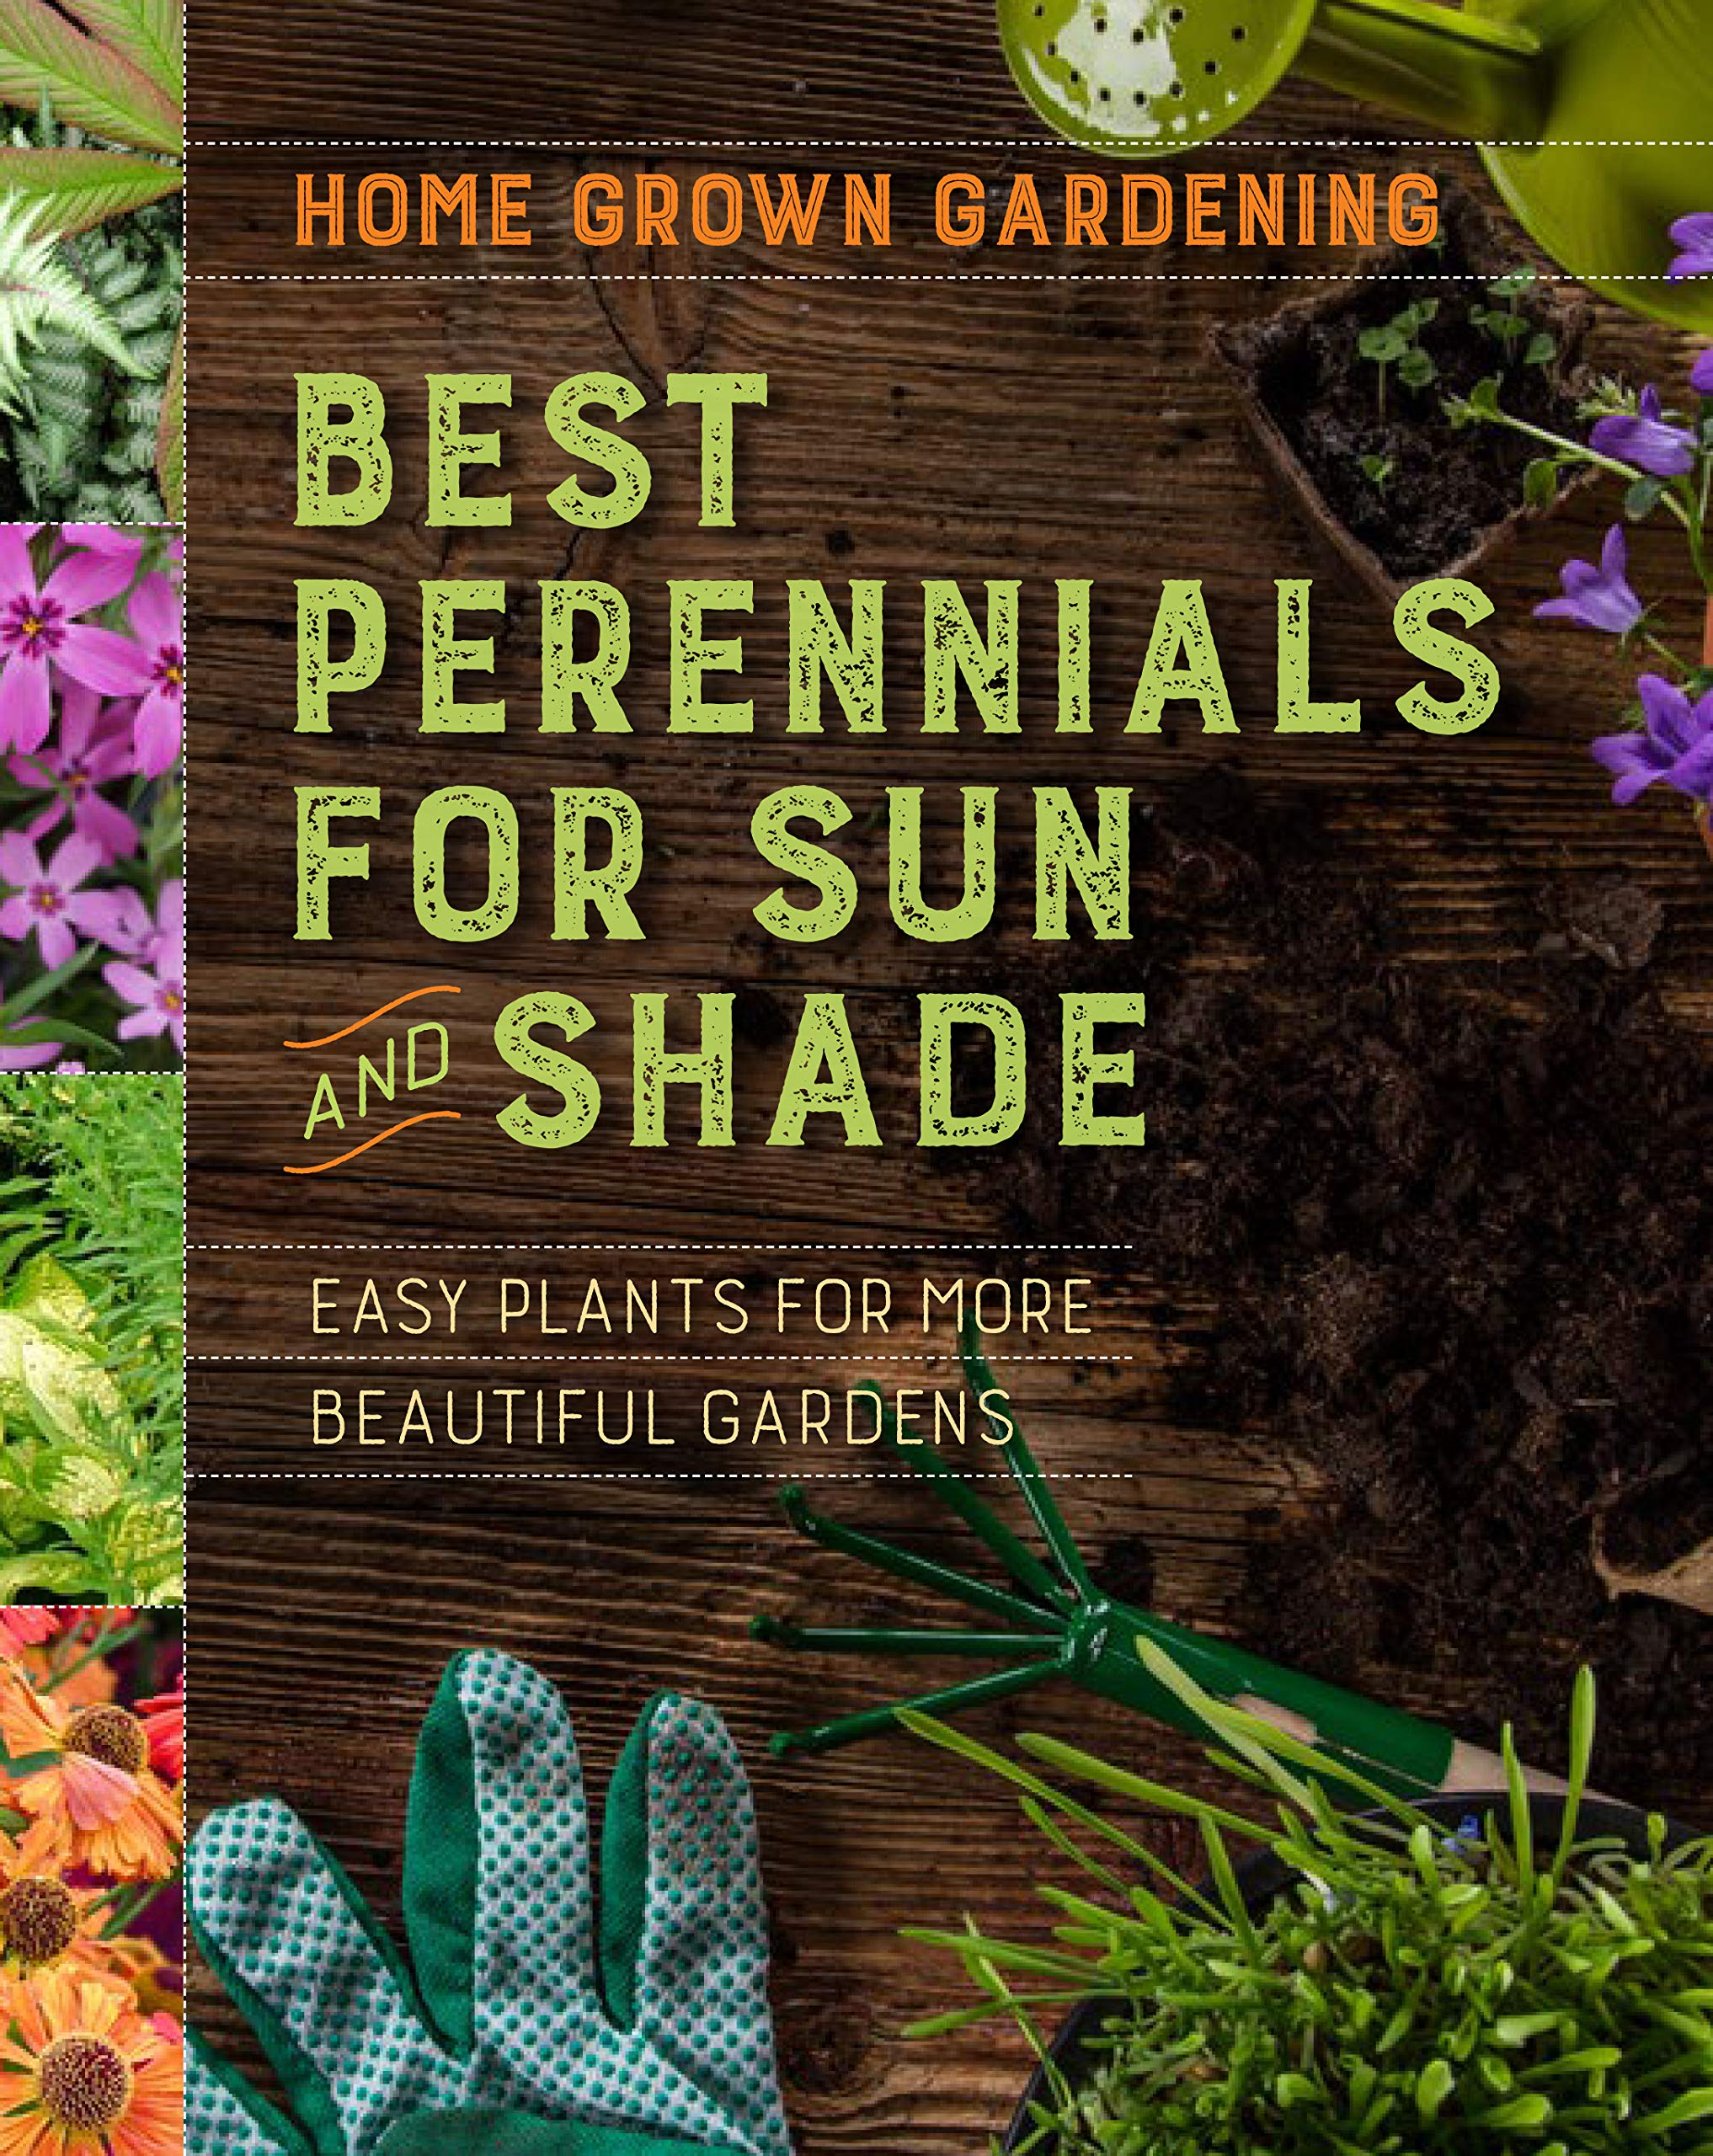 Best Perennials For Sun And Shade Home Grown Gardening Houghton